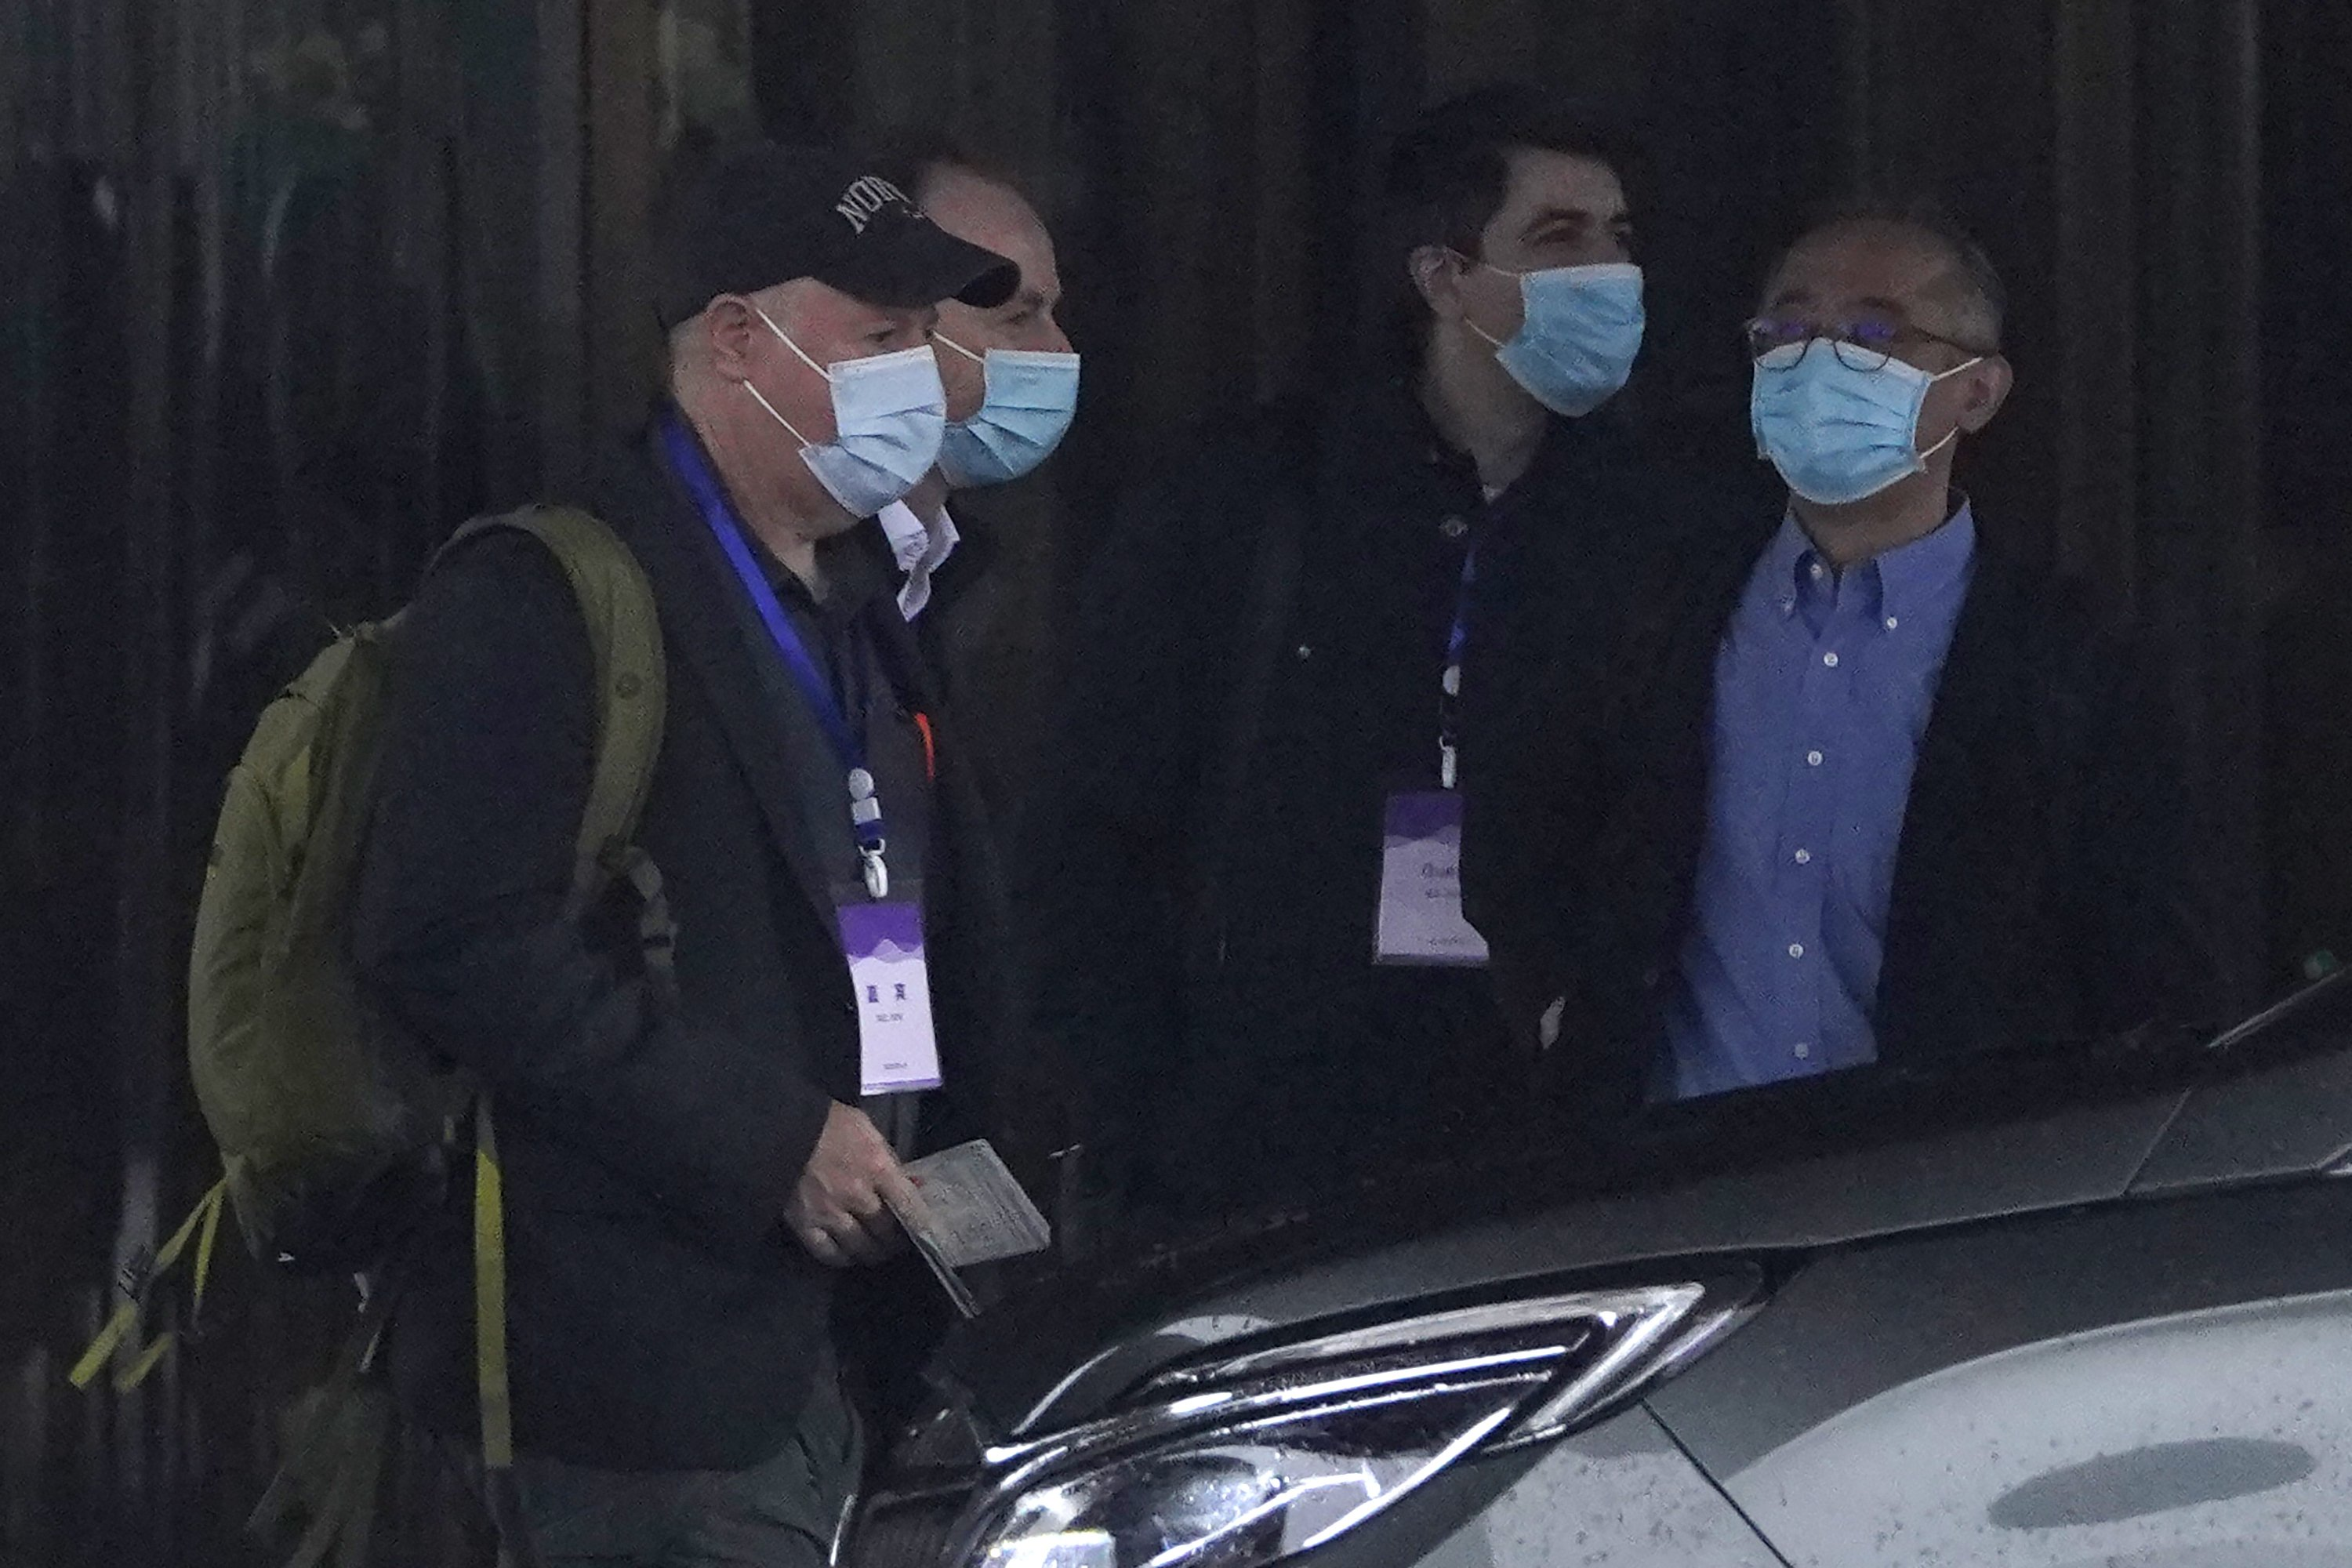 WHO team in Wuhan visits disease control centers – The Associated Press